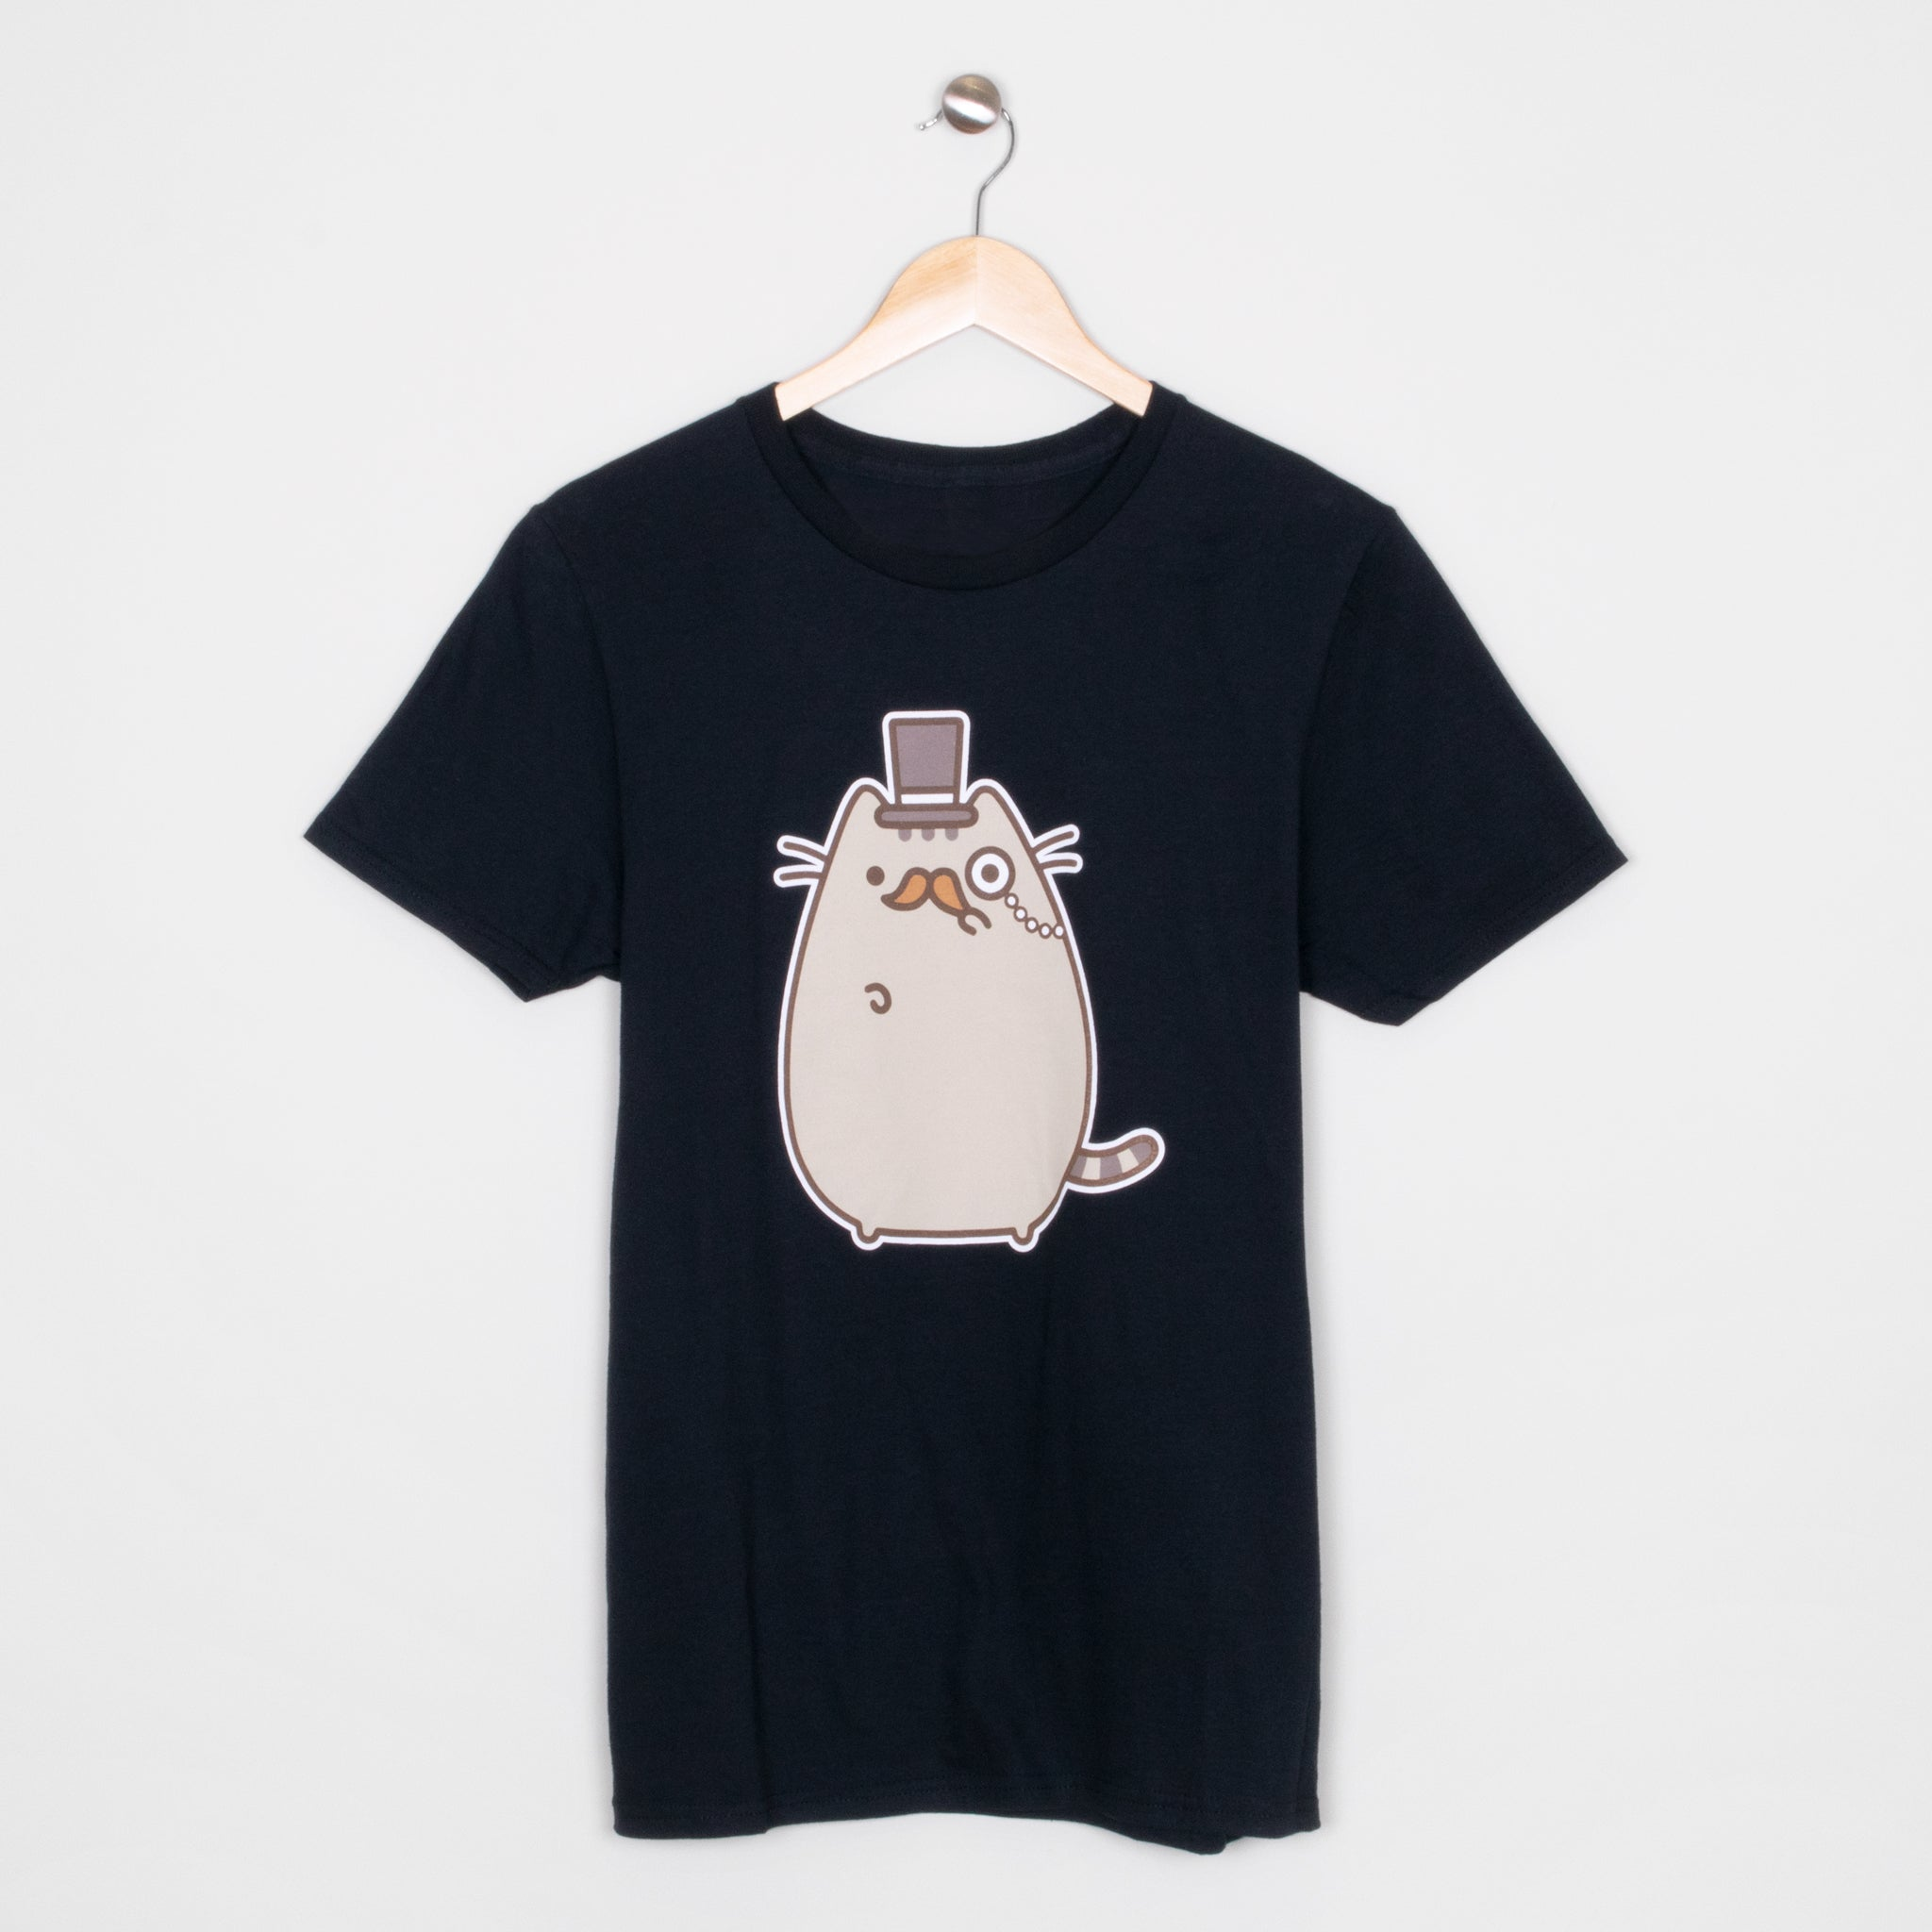 pusheen fancy refined mustache monocle apparel t-shirt shirt cute cat culturefly